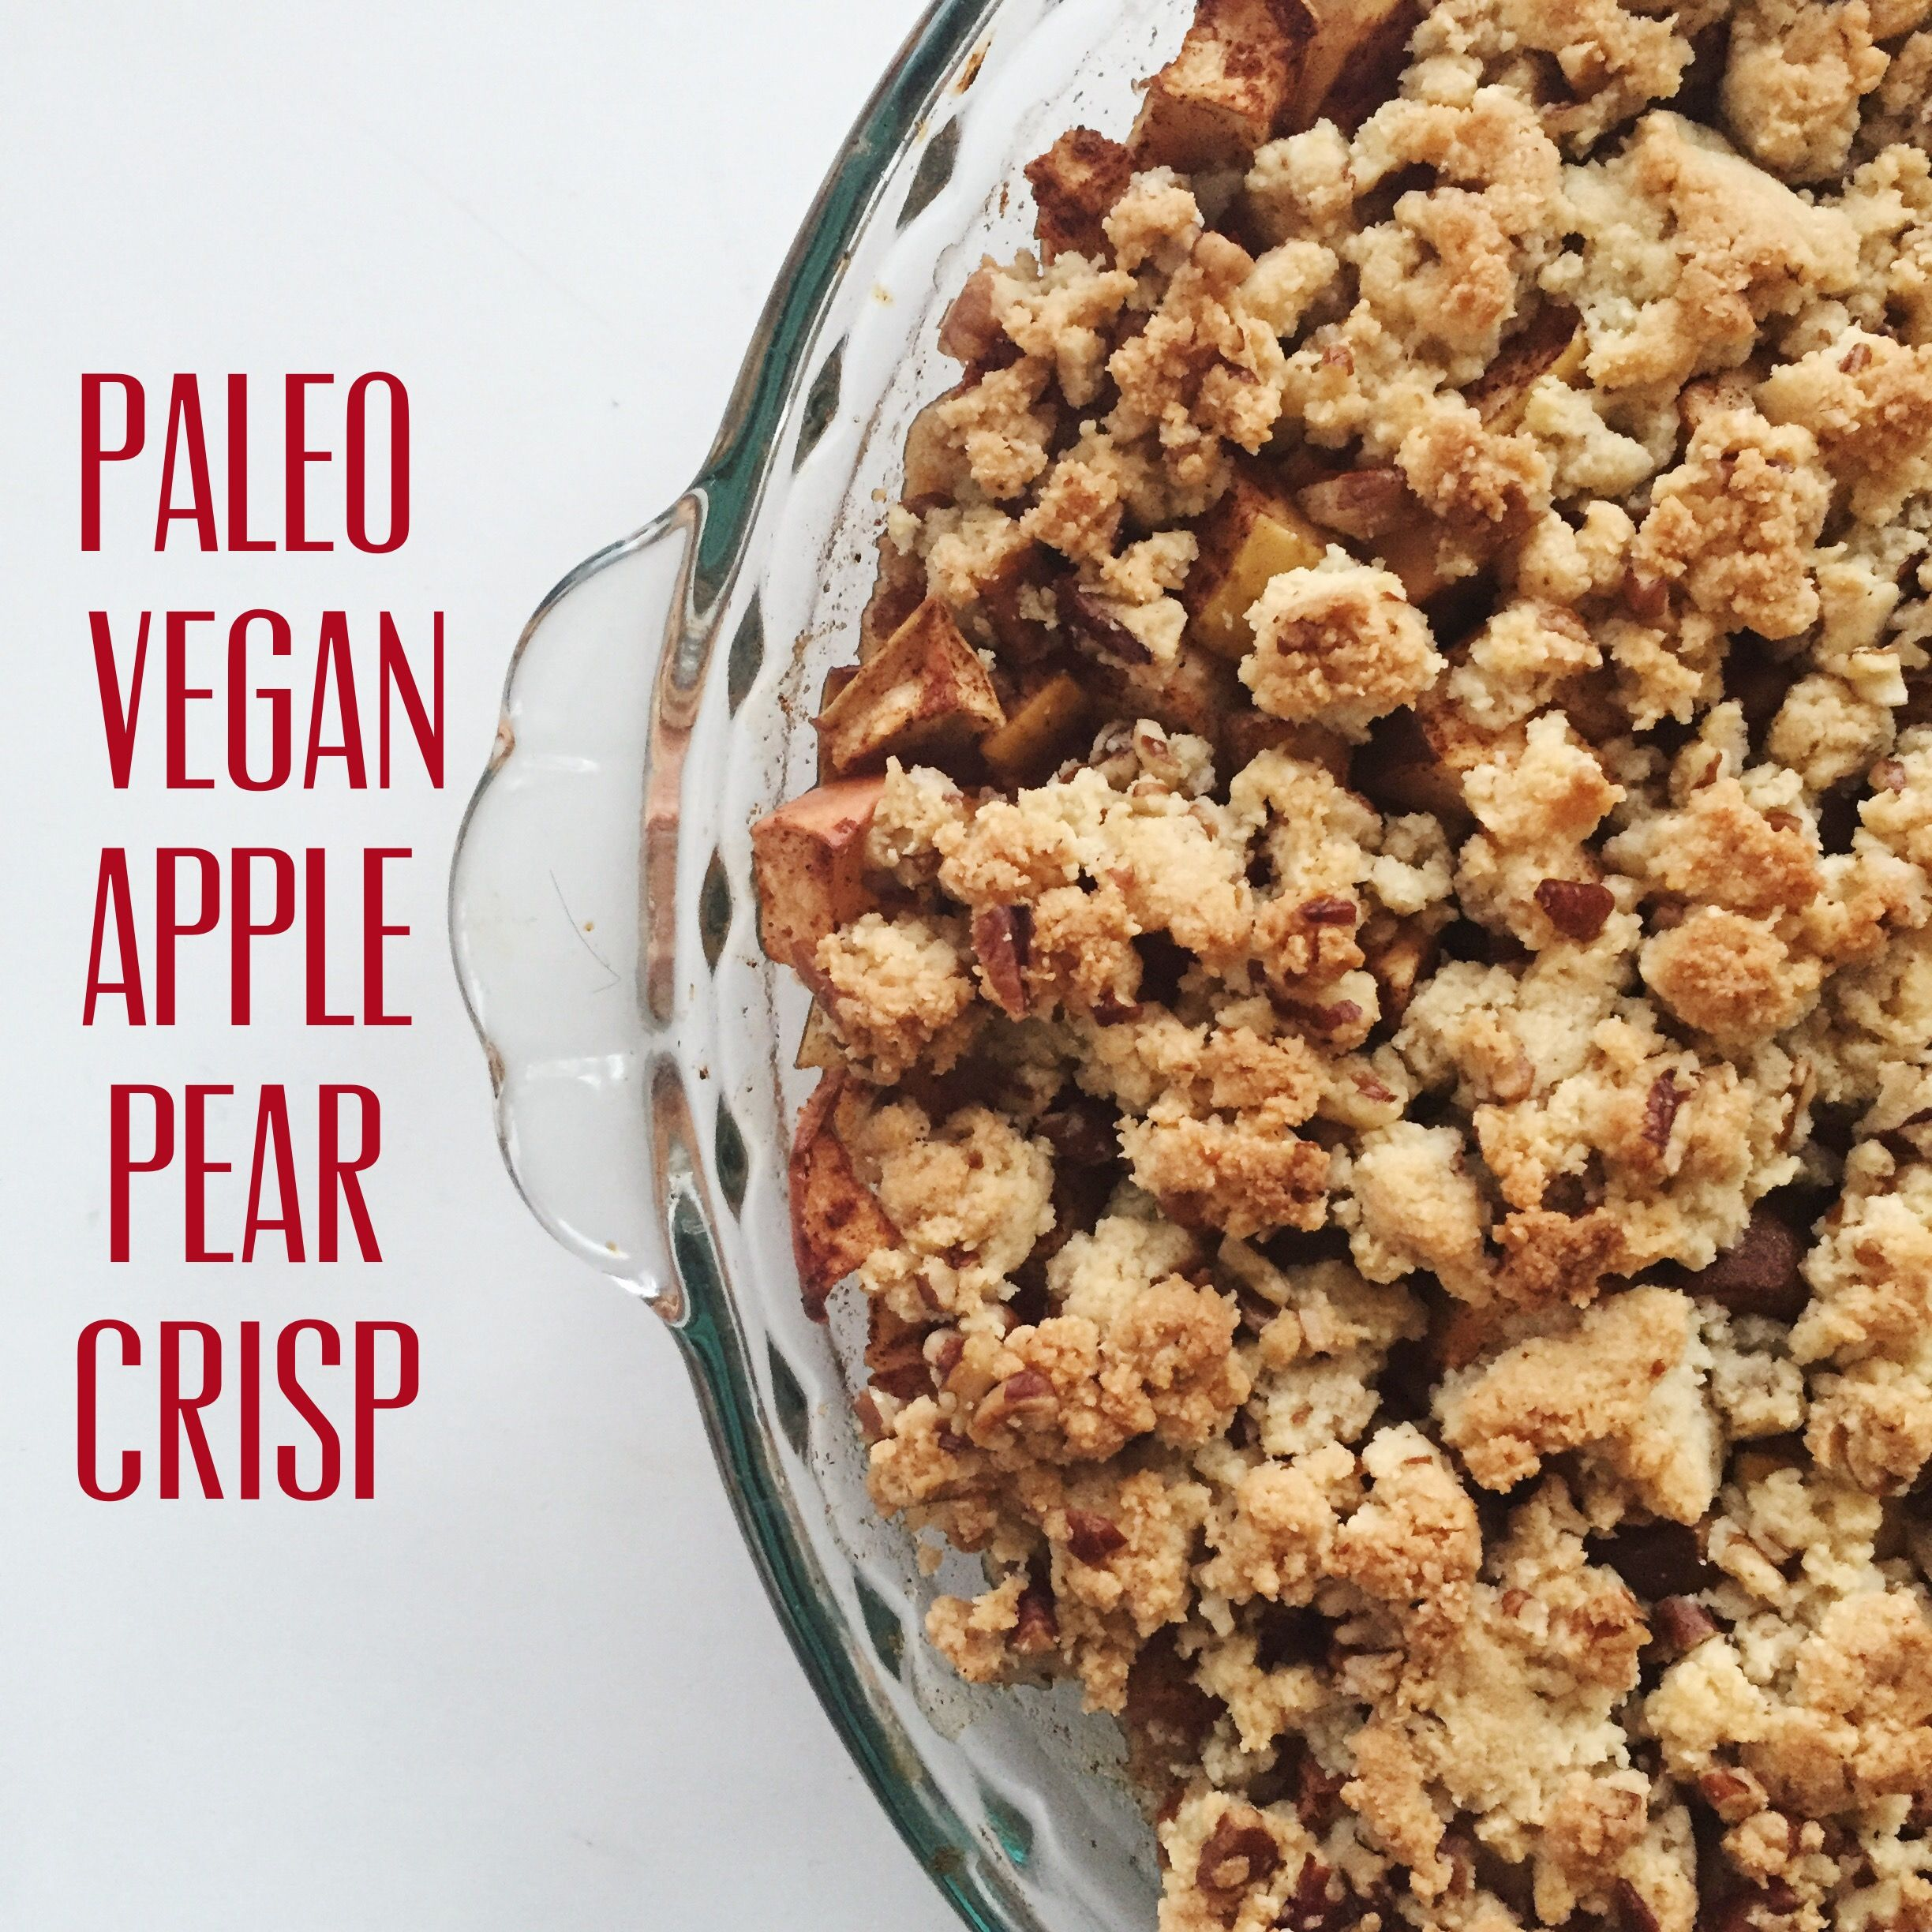 ... about Apple Pear on Pinterest | Pears, Apple pear crisp and Apples